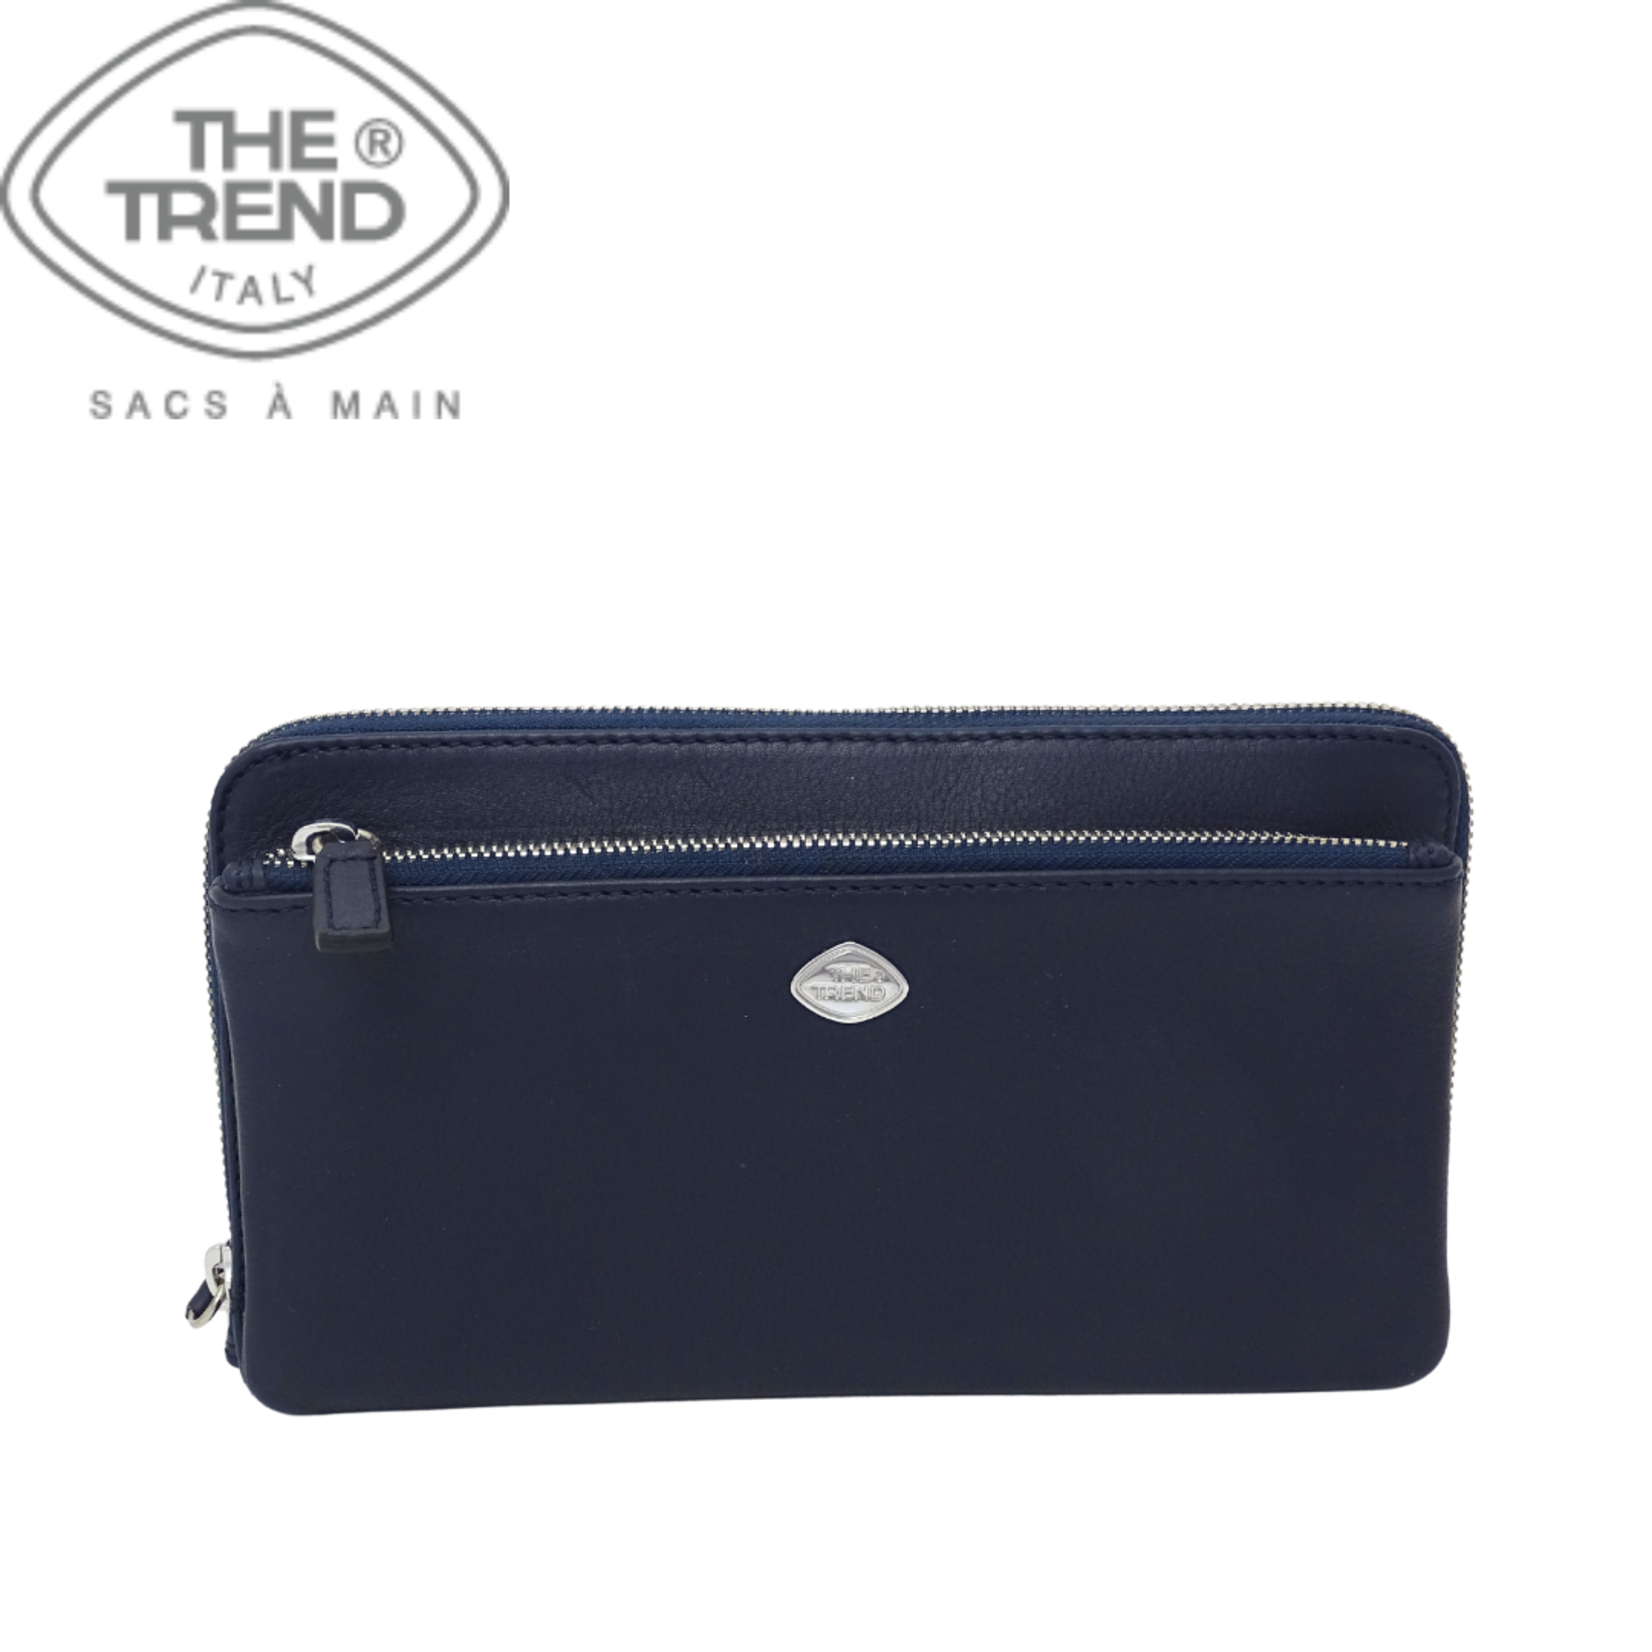 The Trend The Trend 585547 navy